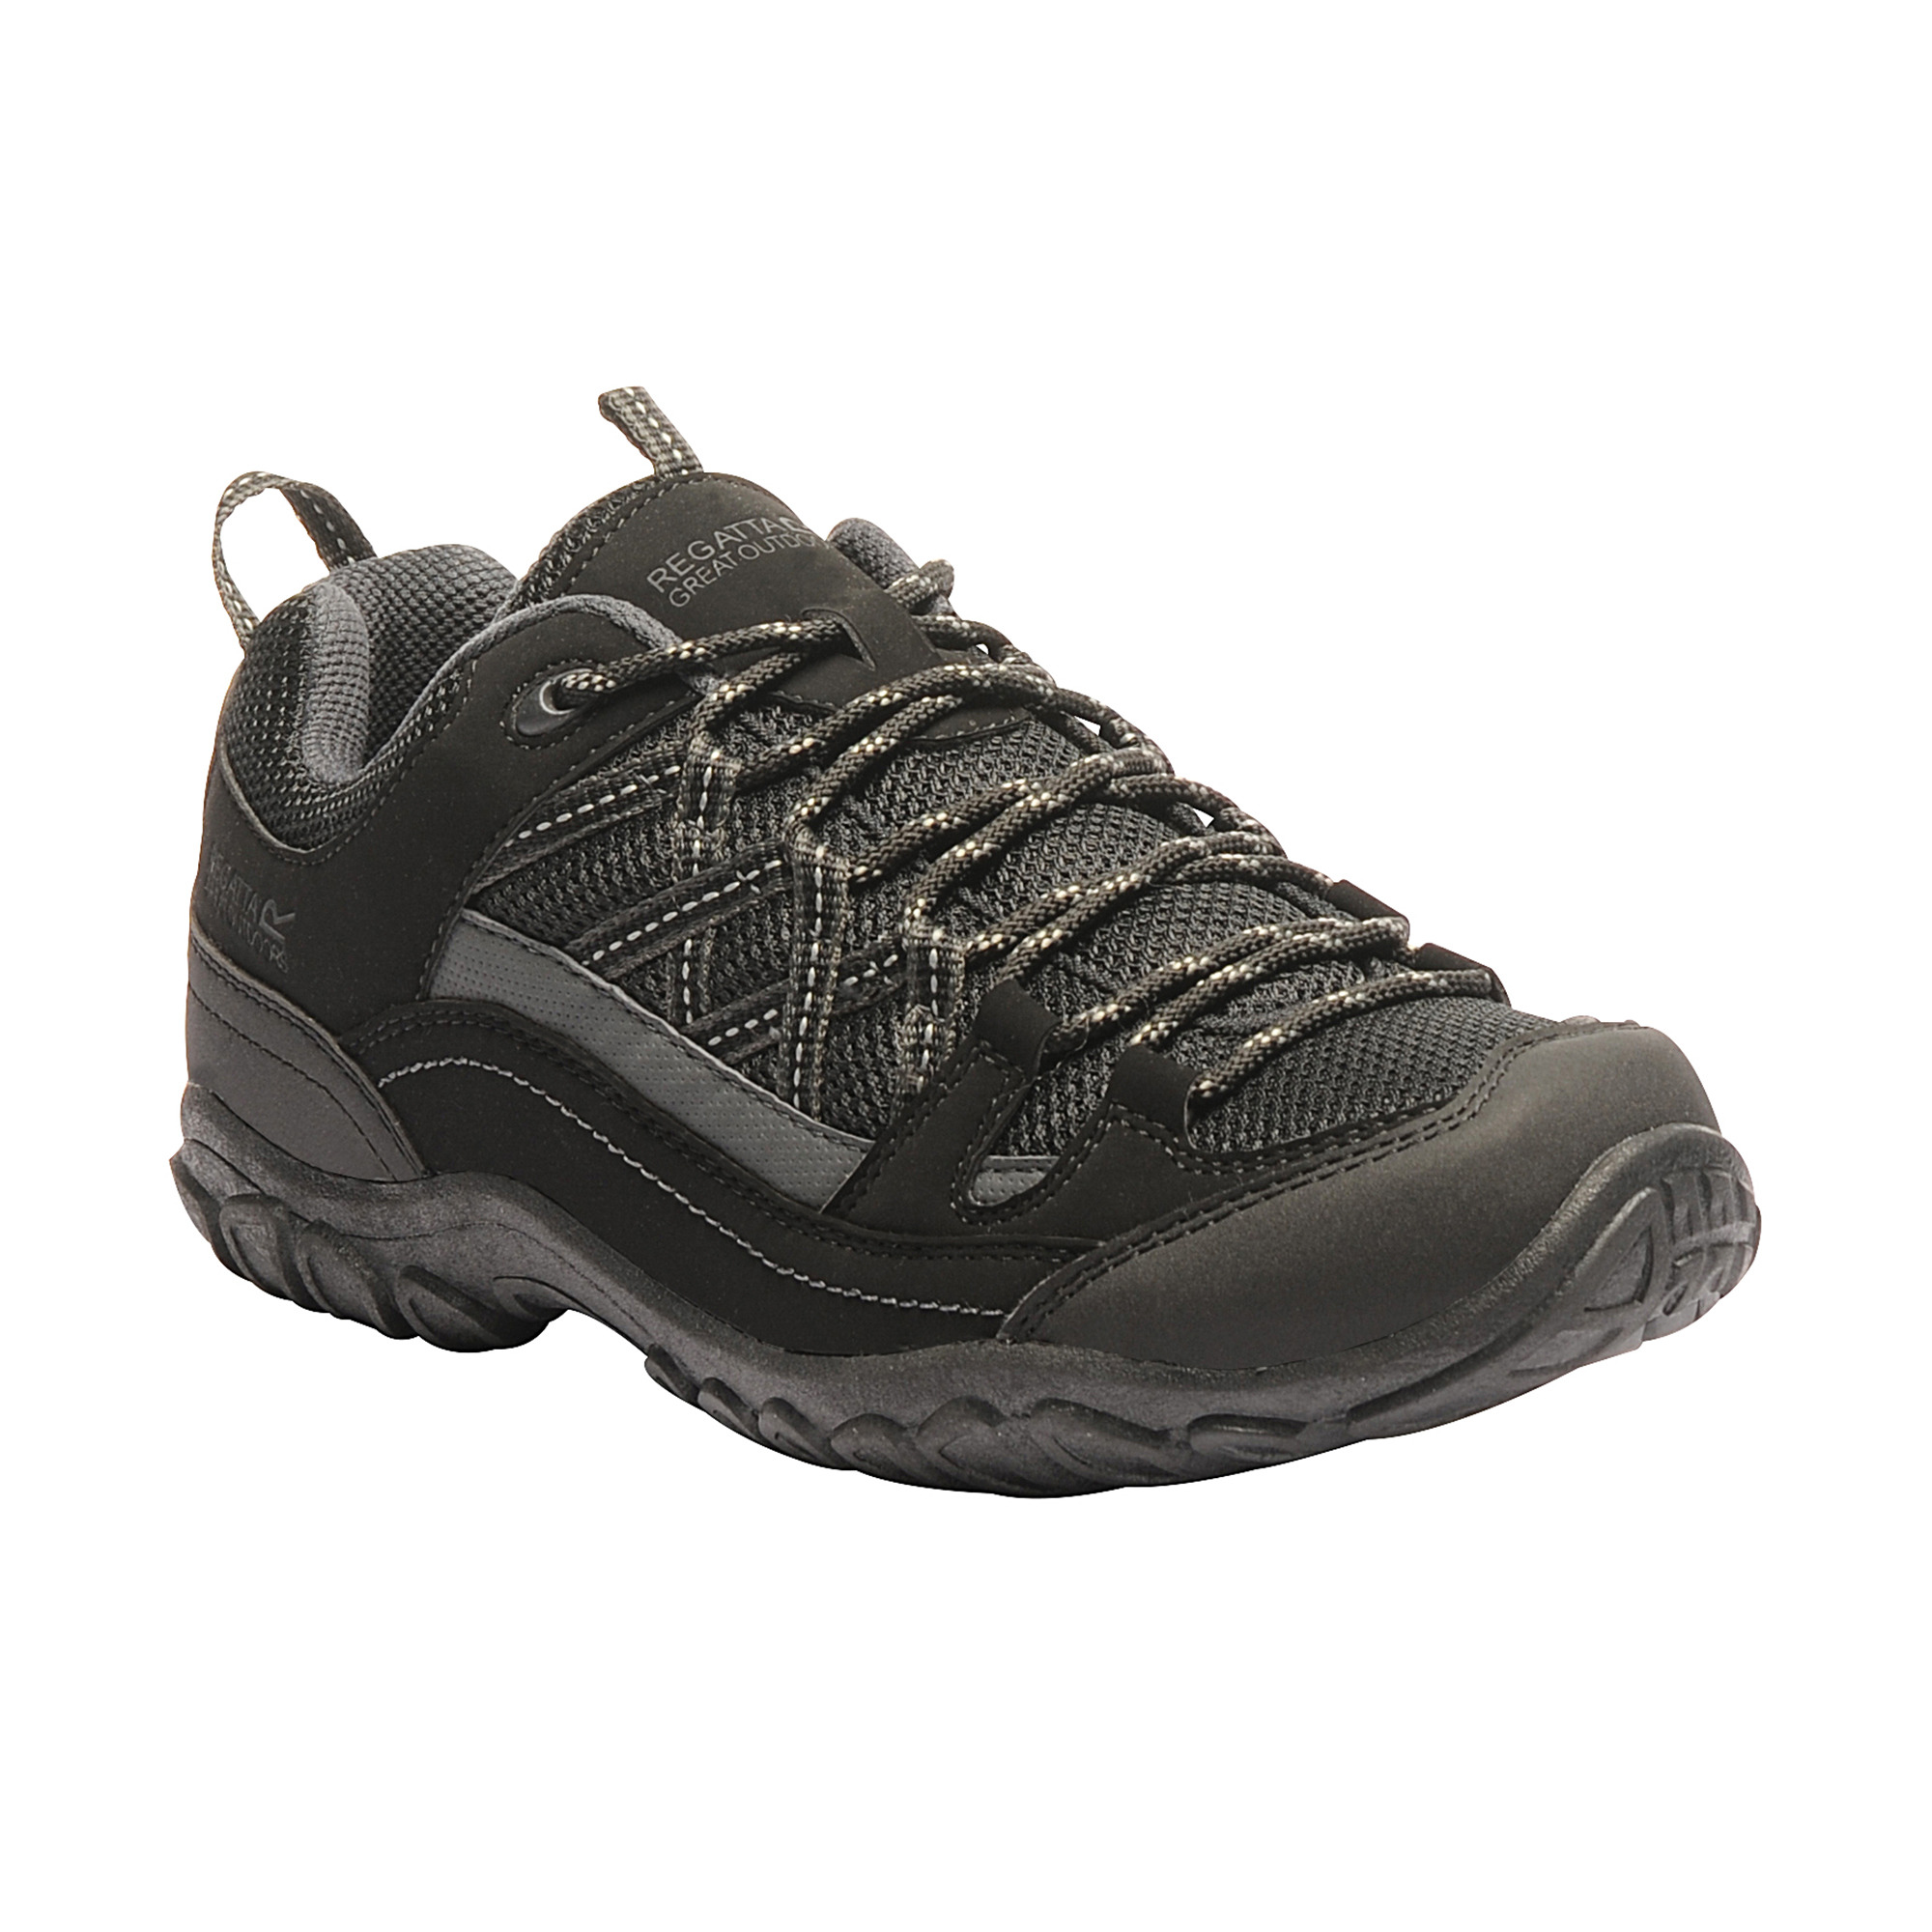 Regatta-Great-Outdoors-Mens-Edgepoint-II-Padded-Hiking-Shoes-RG2135